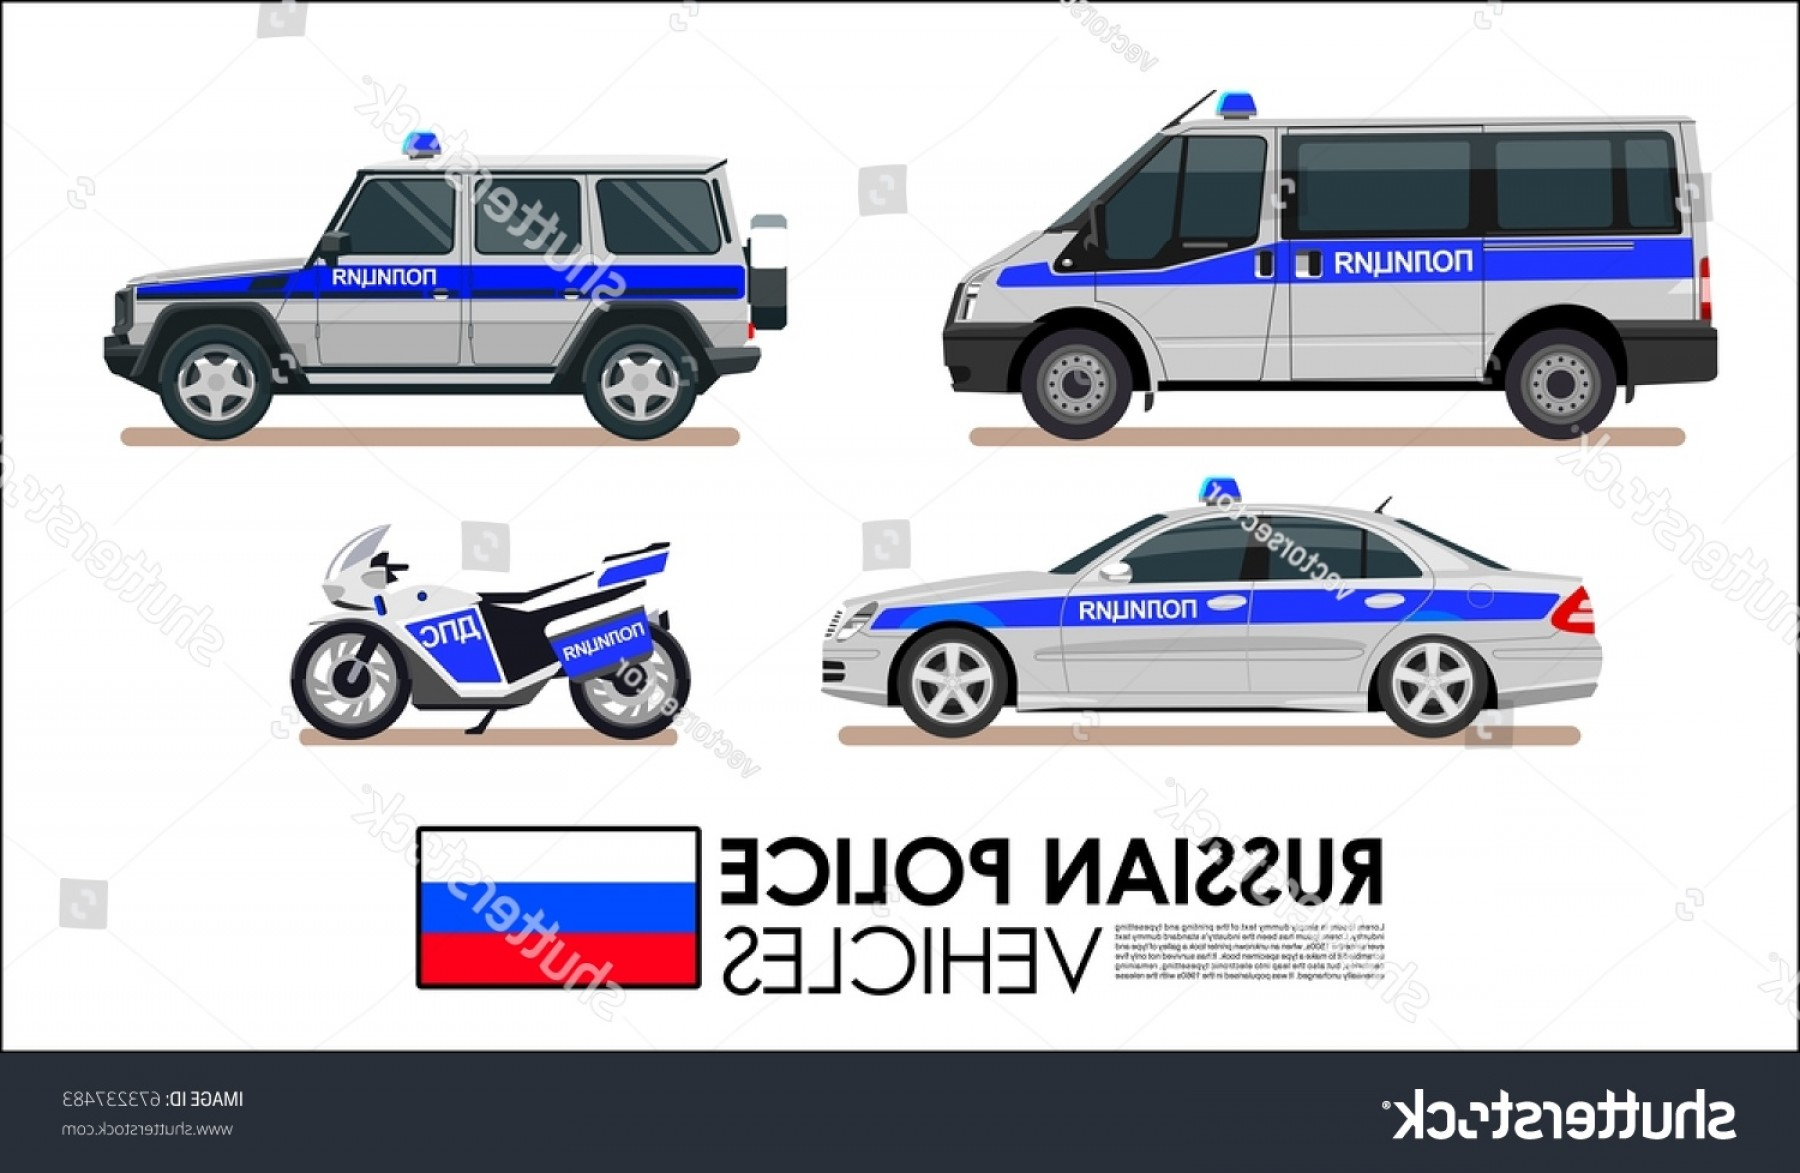 Custom Police Cars Vector: Russian Police Car Vehicles Van Motorcycle